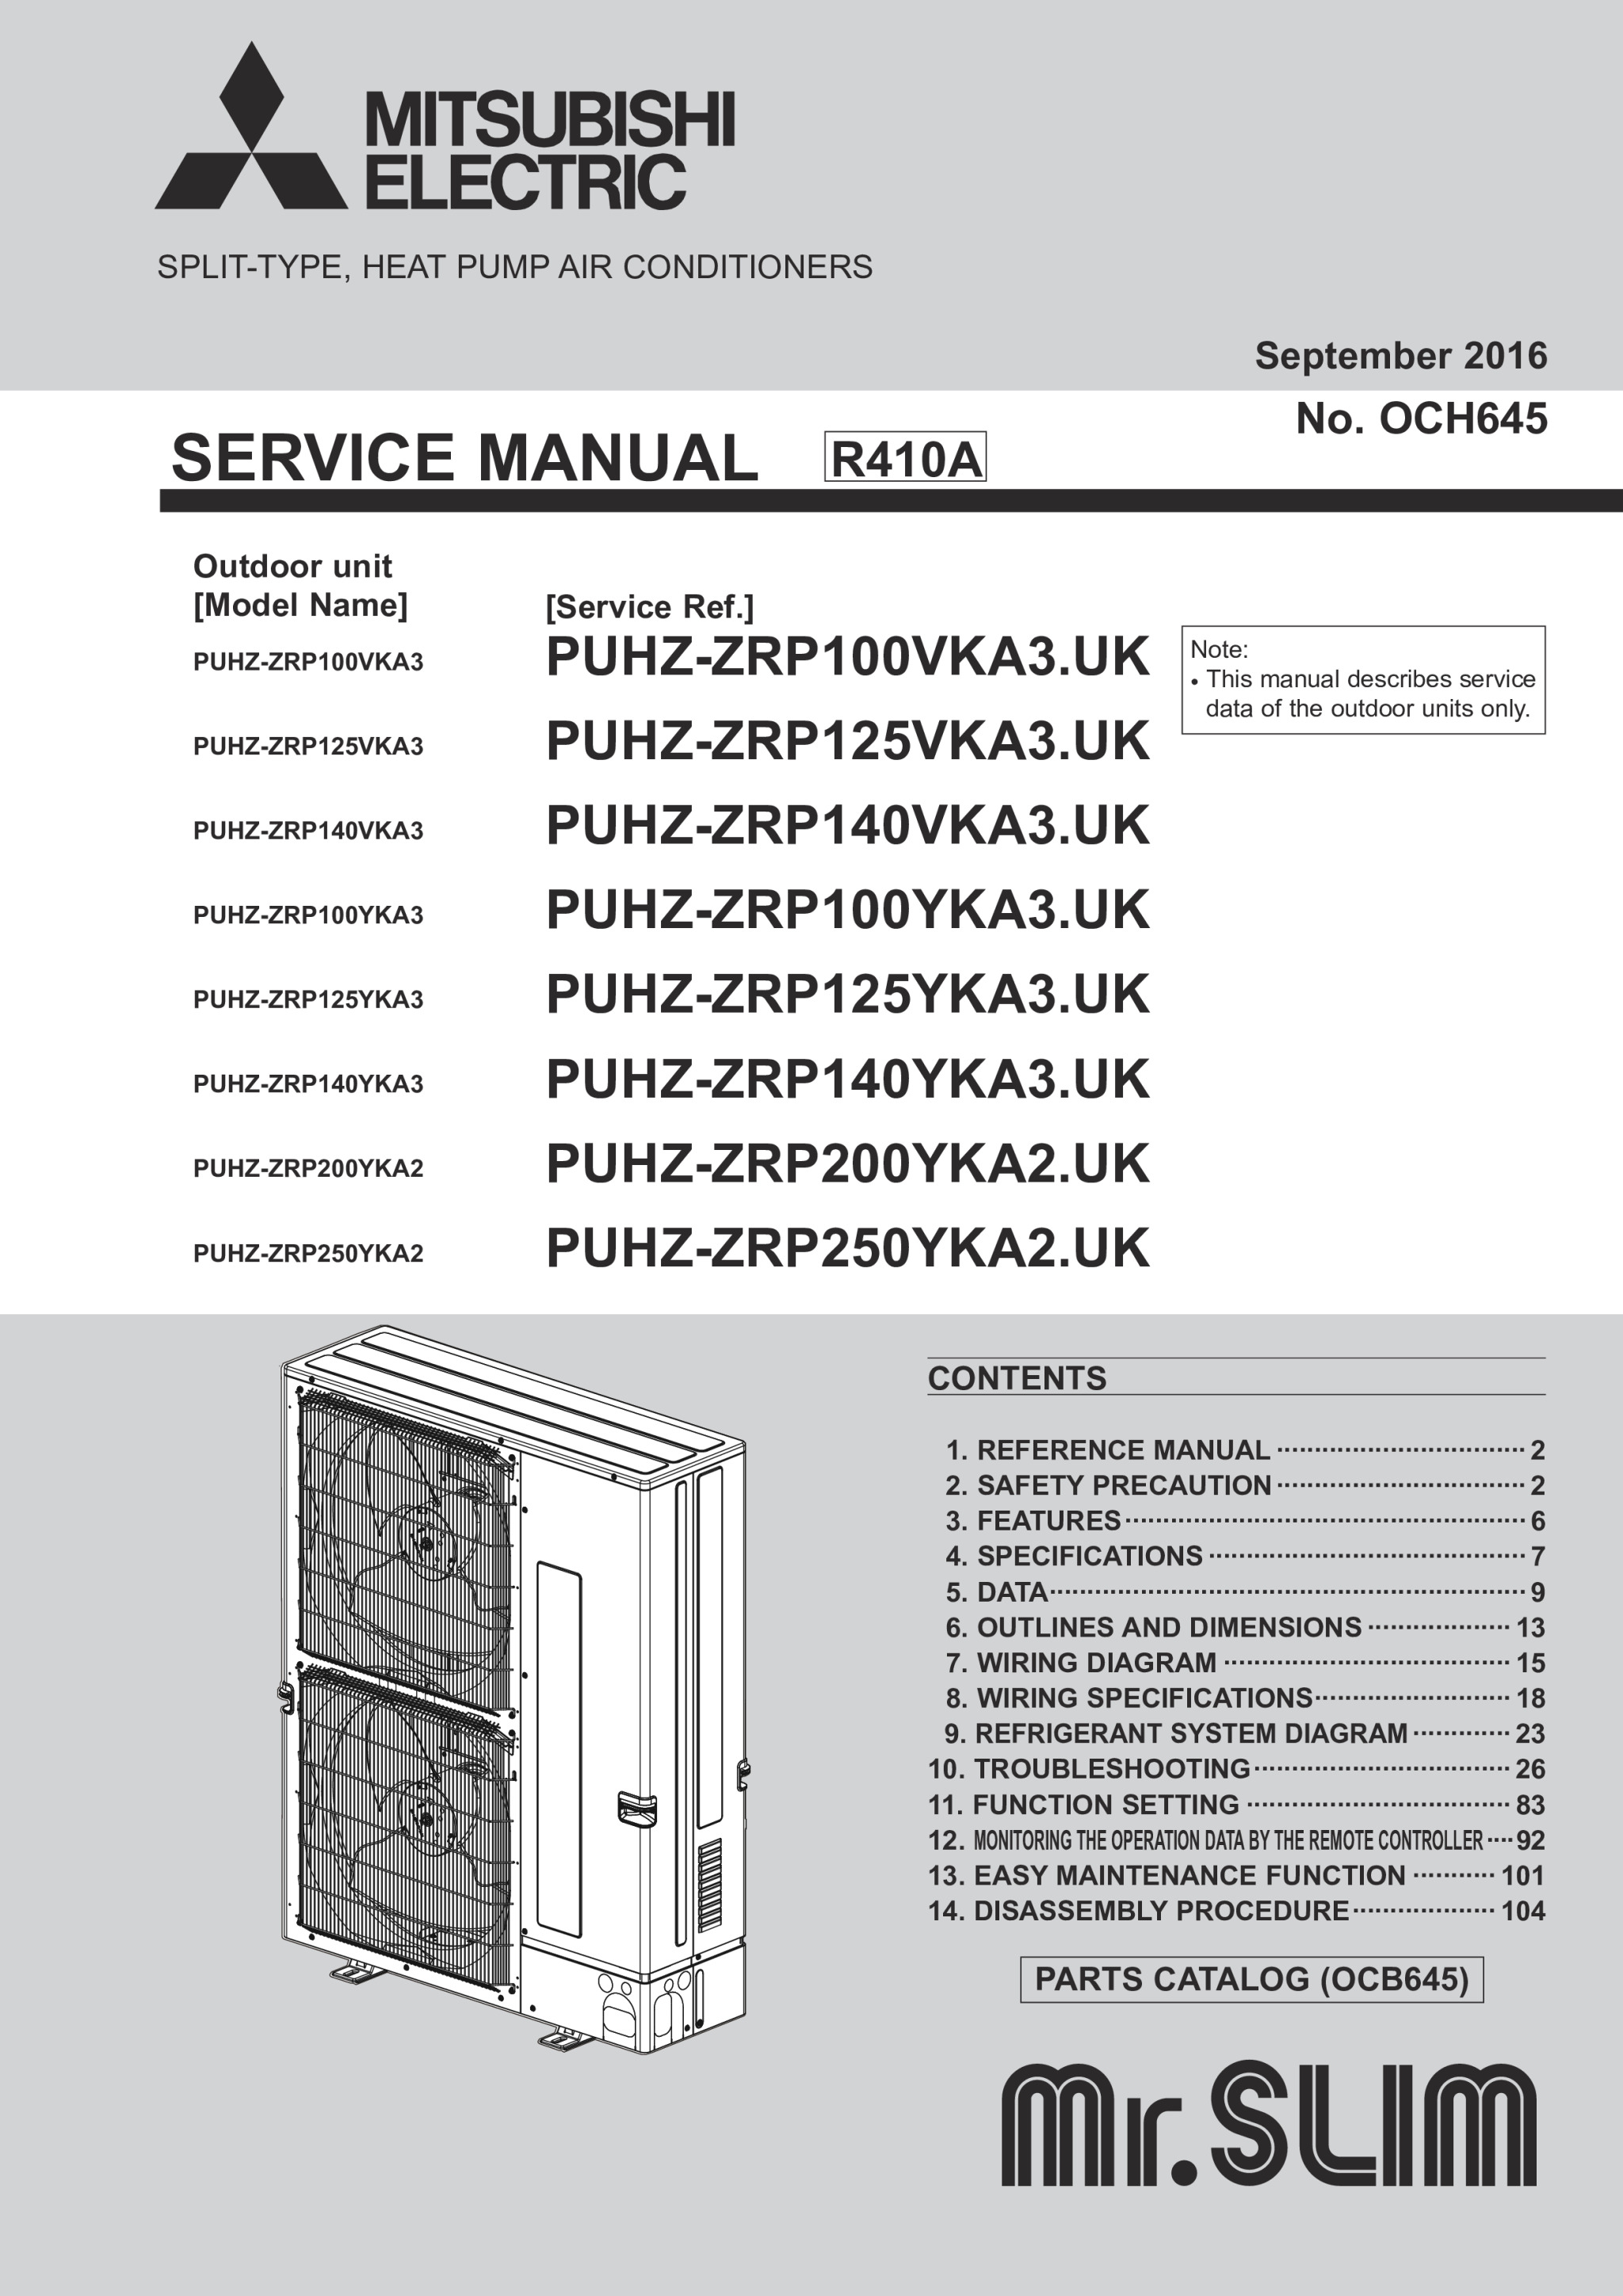 0_main puhz zrp100 250v yka(3)(2) service manual (och645) mitsubishi mitsubishi mr slim wiring diagram at gsmportal.co